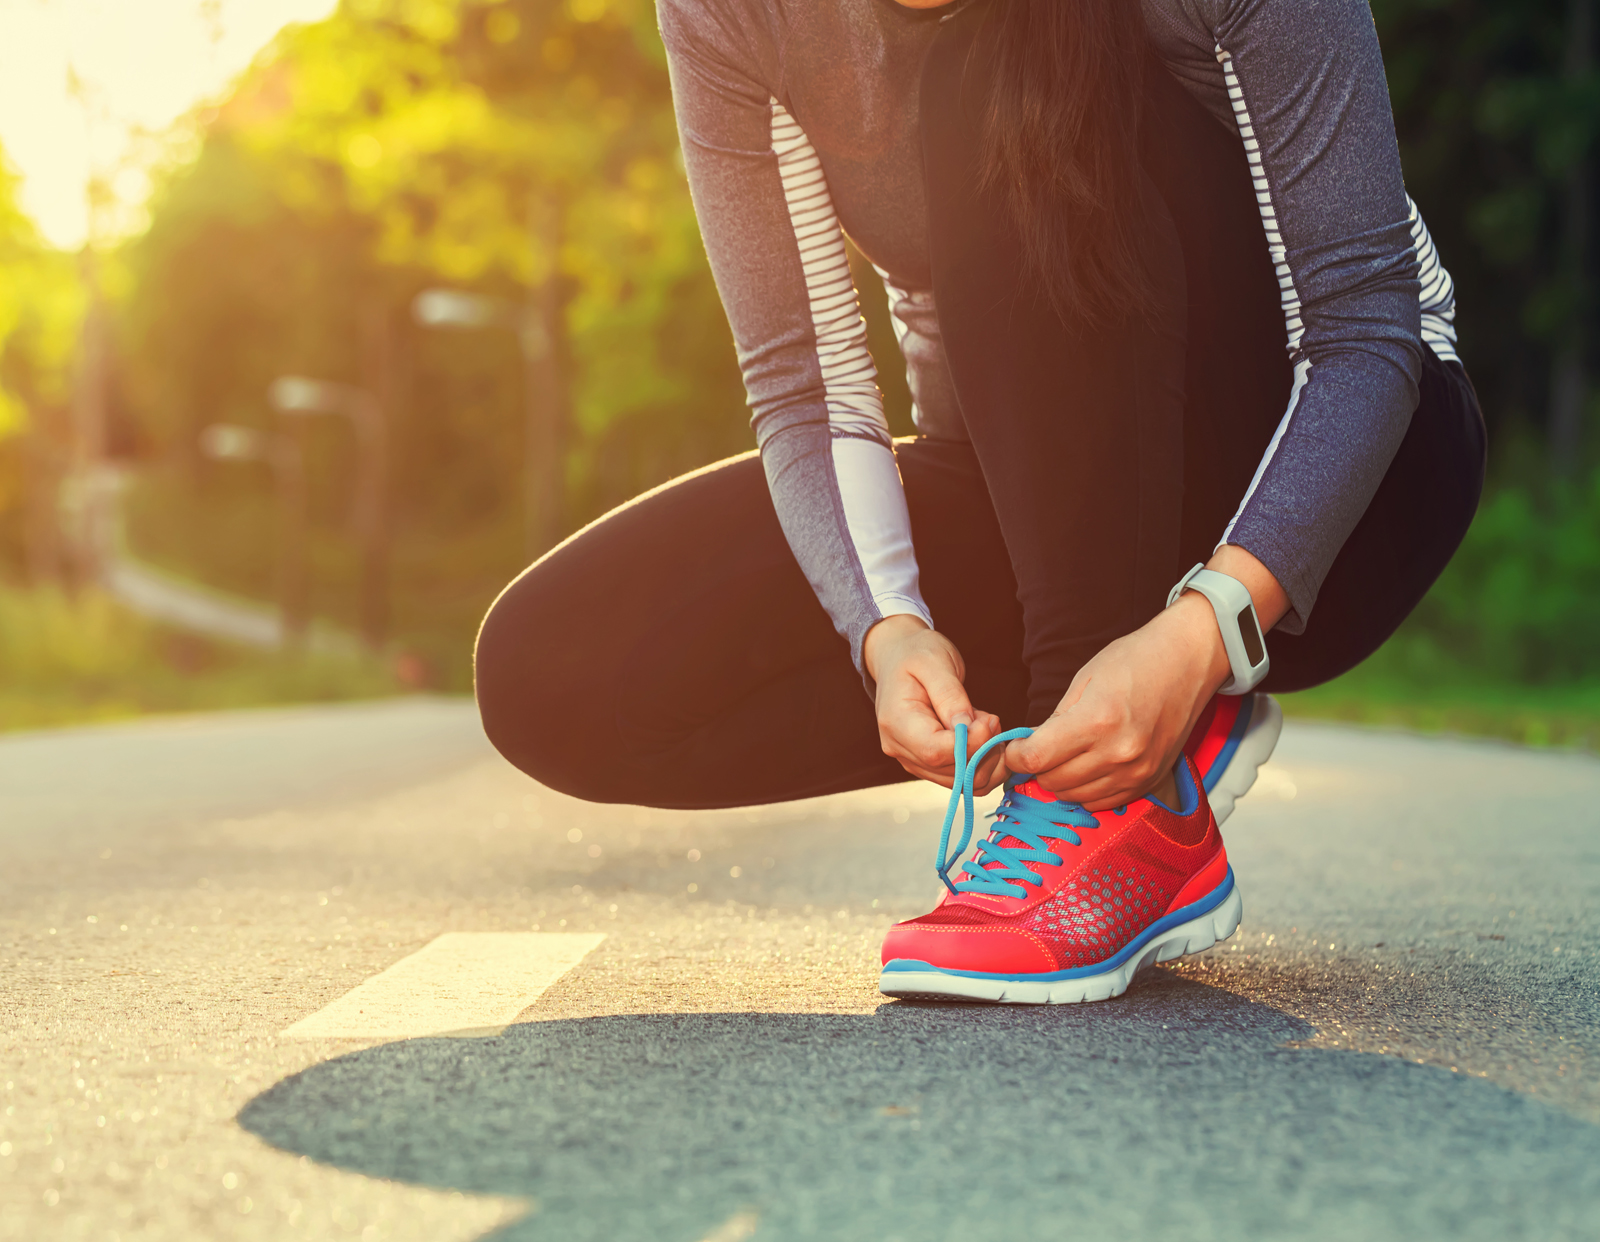 Female runner tying her shoes preparing for a jog